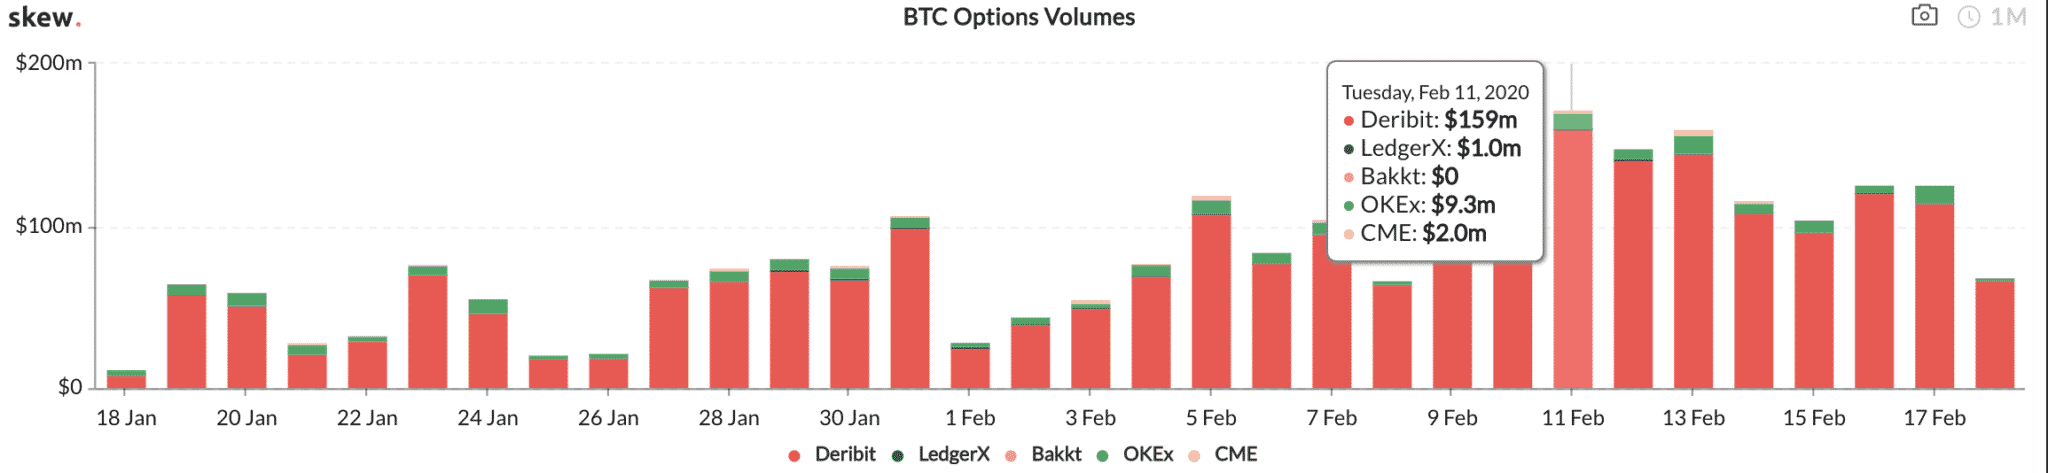 Bitcoin options, the cool new thing. Data from skew.